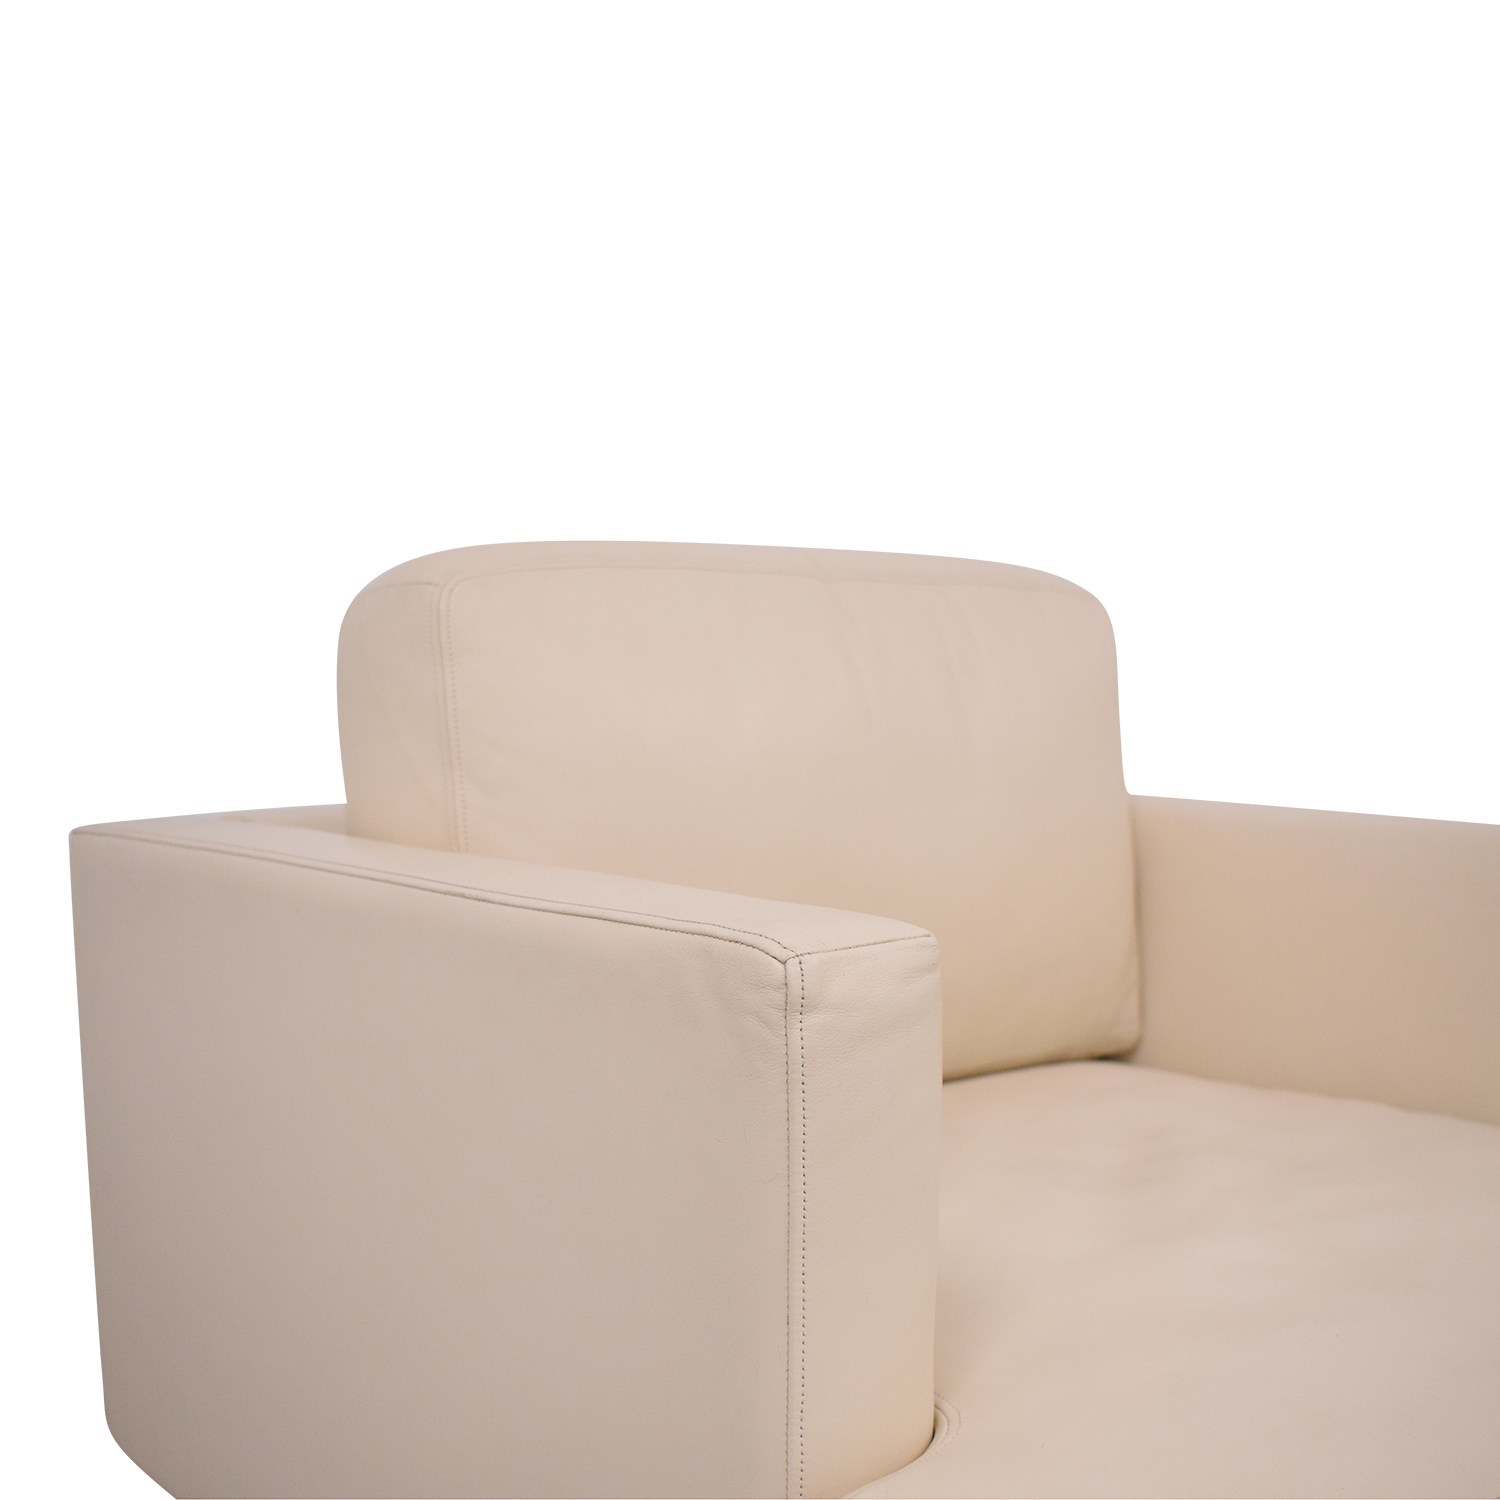 Knoll Knoll D'Urso Residential Lounge Chair Chairs